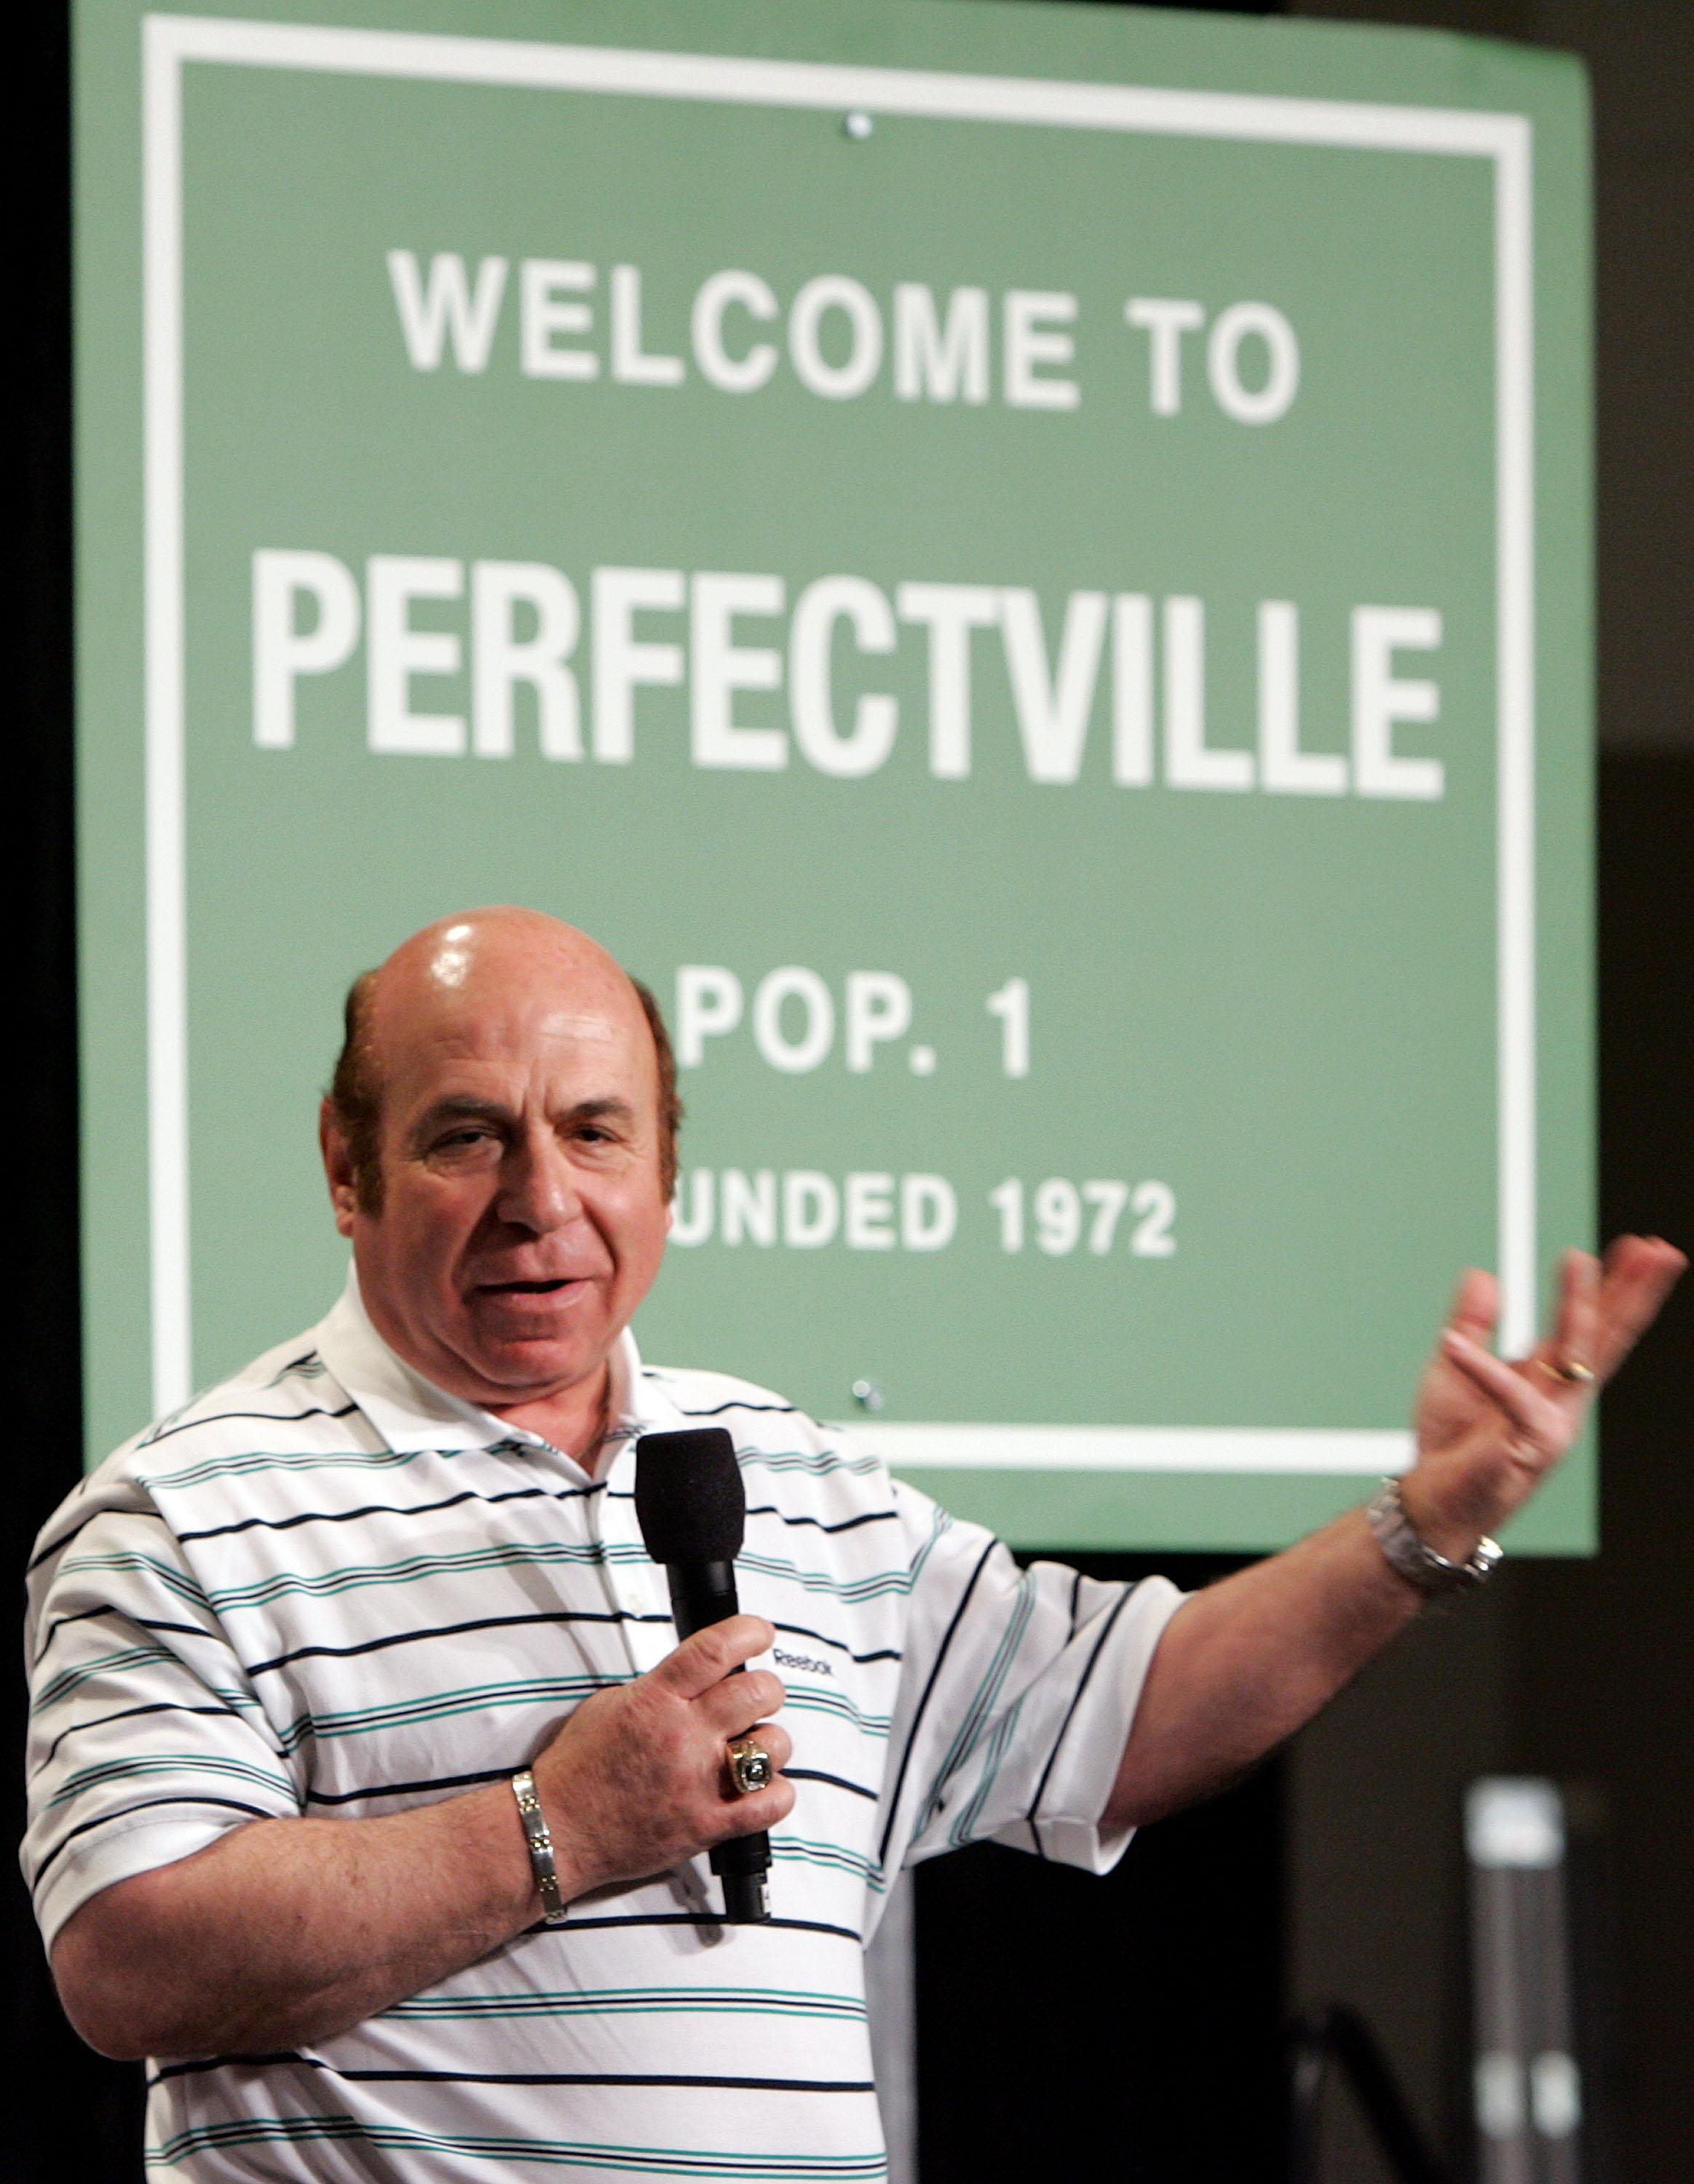 PHOENIX - FEBRUARY 01:  Former Miami Dolphin Garo Yepremian speaks during a press conference anouncing Reebok's new television campaign -dubbed 'Perfectville'- featuring members of the only undeated team in NFL history- the 1972 Miami Dolphins on February